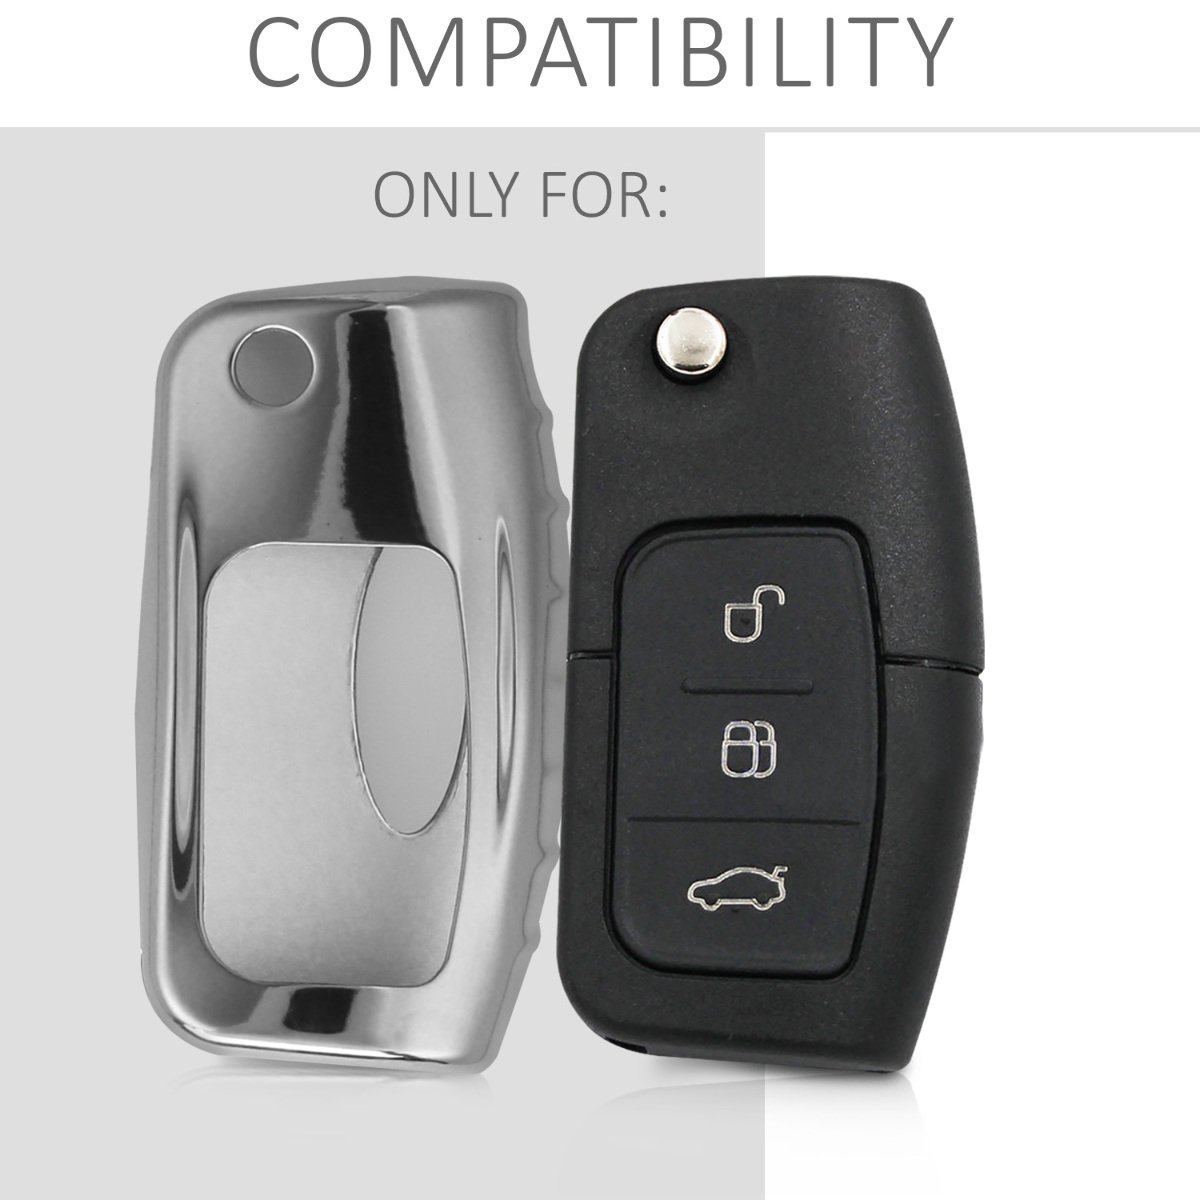 kwmobile Car Key Cover for Ford Rose Gold Matte Soft TPU Silicone Protective Key Fob Cover for Ford 3 Button Car Flip Key